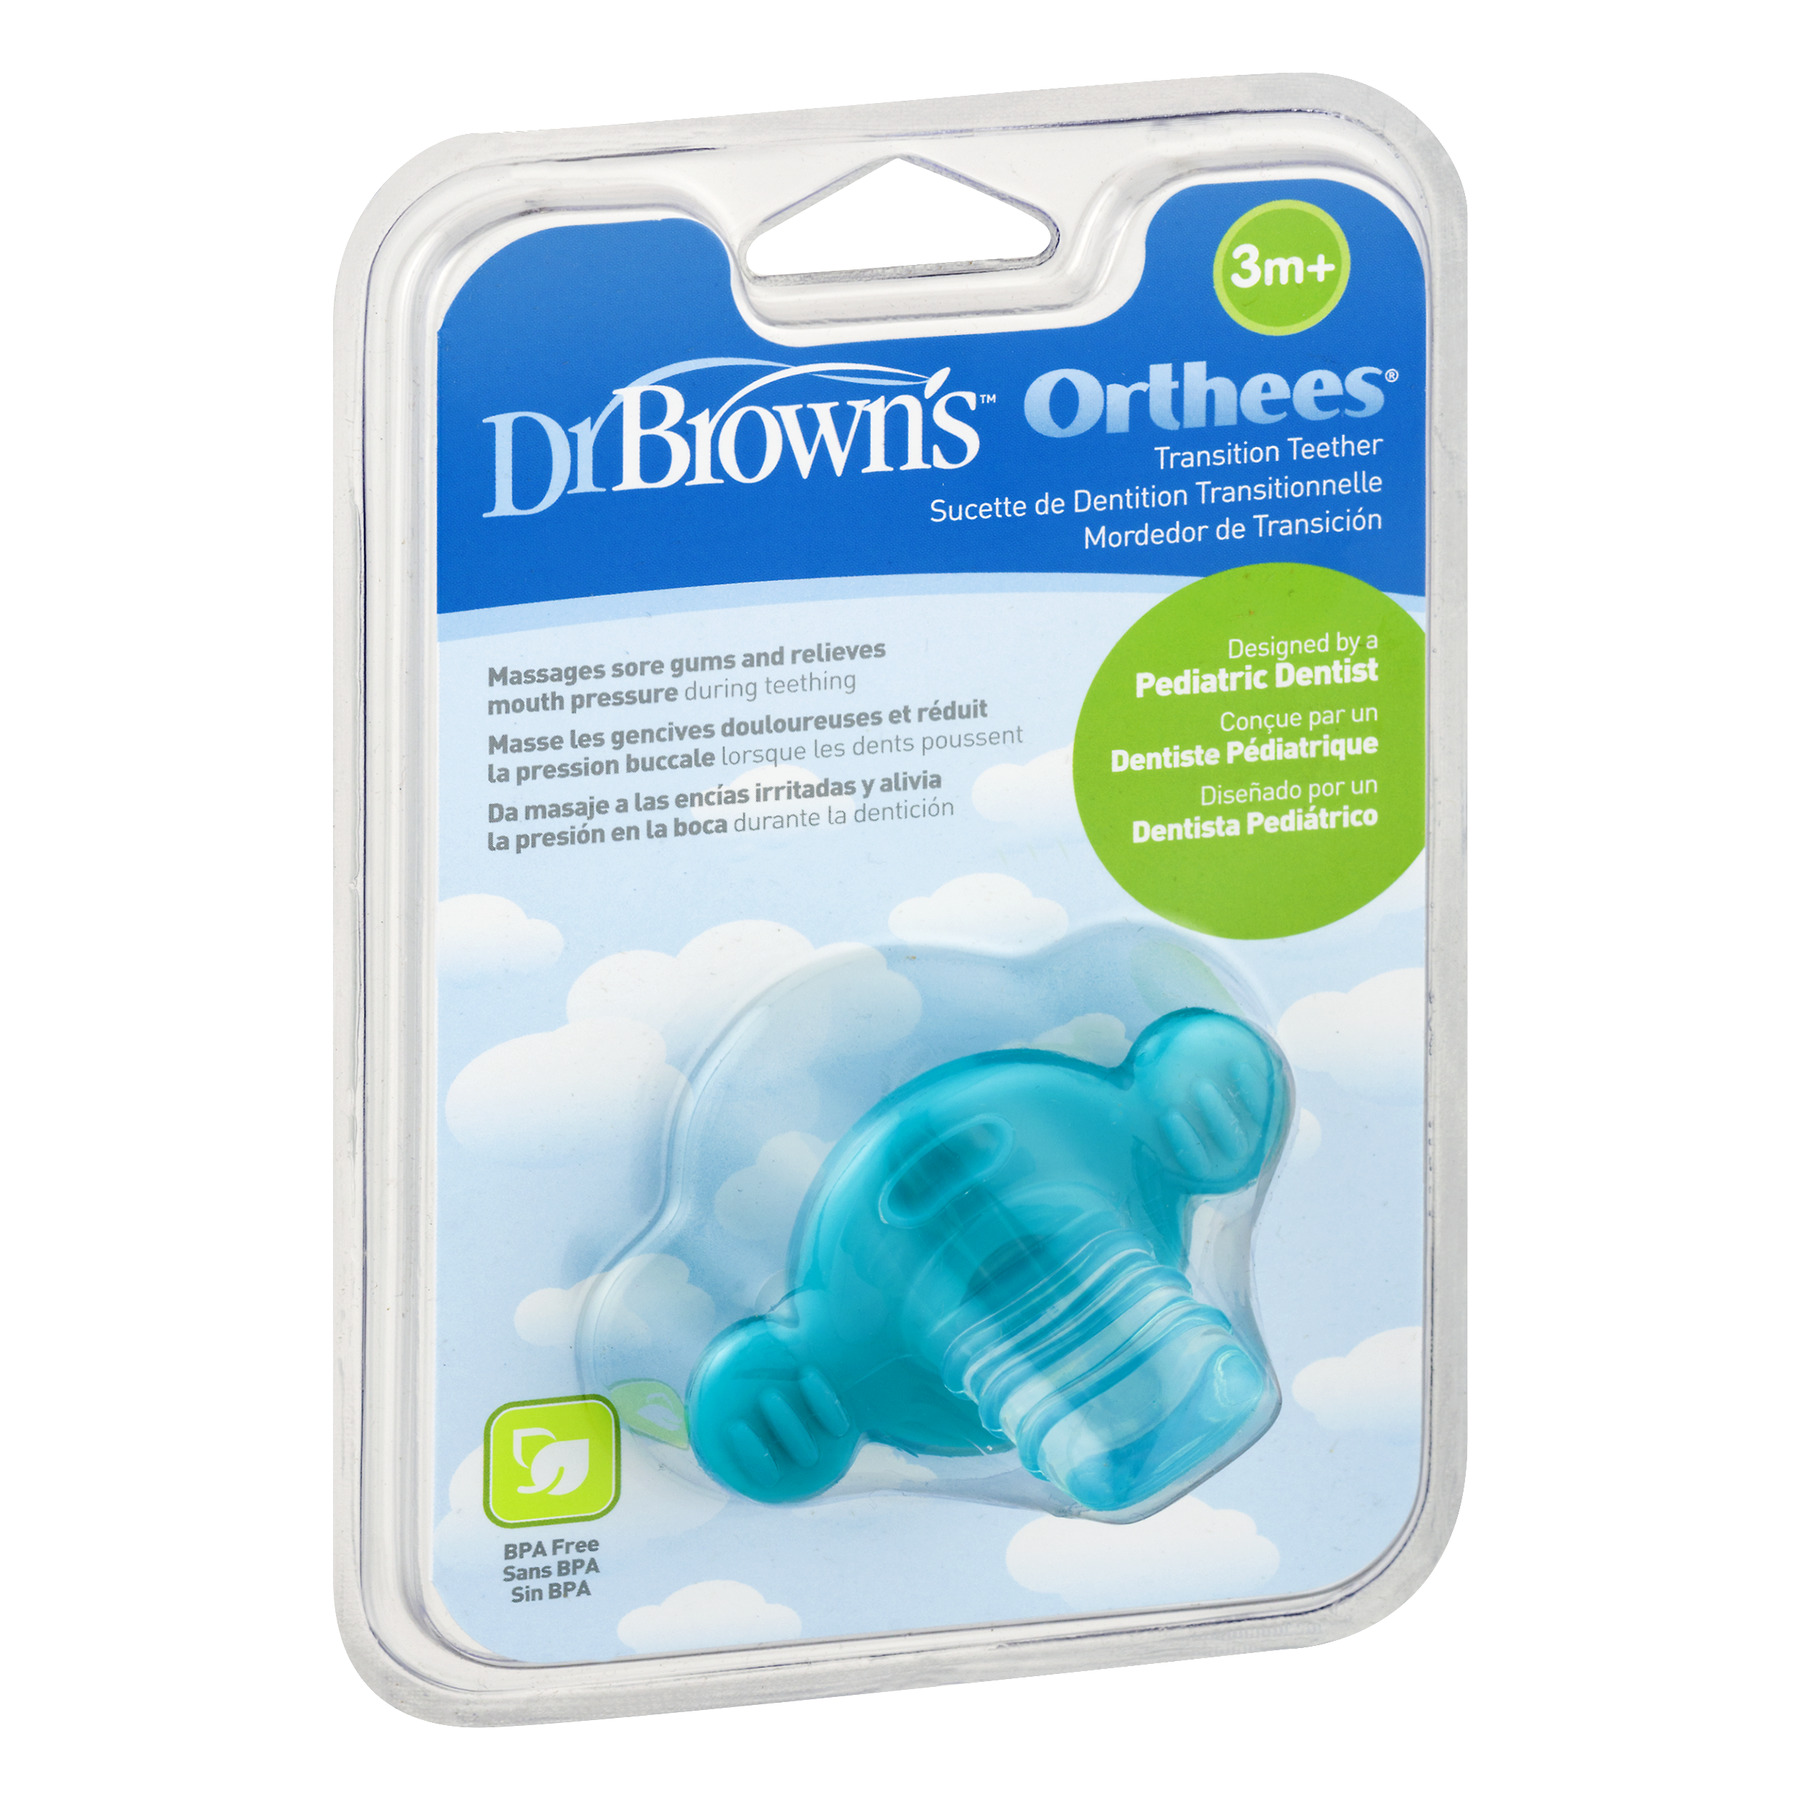 BPA Free Pack of 3 Dr Blue Brown/'s Orthees Transition Teether 3m+